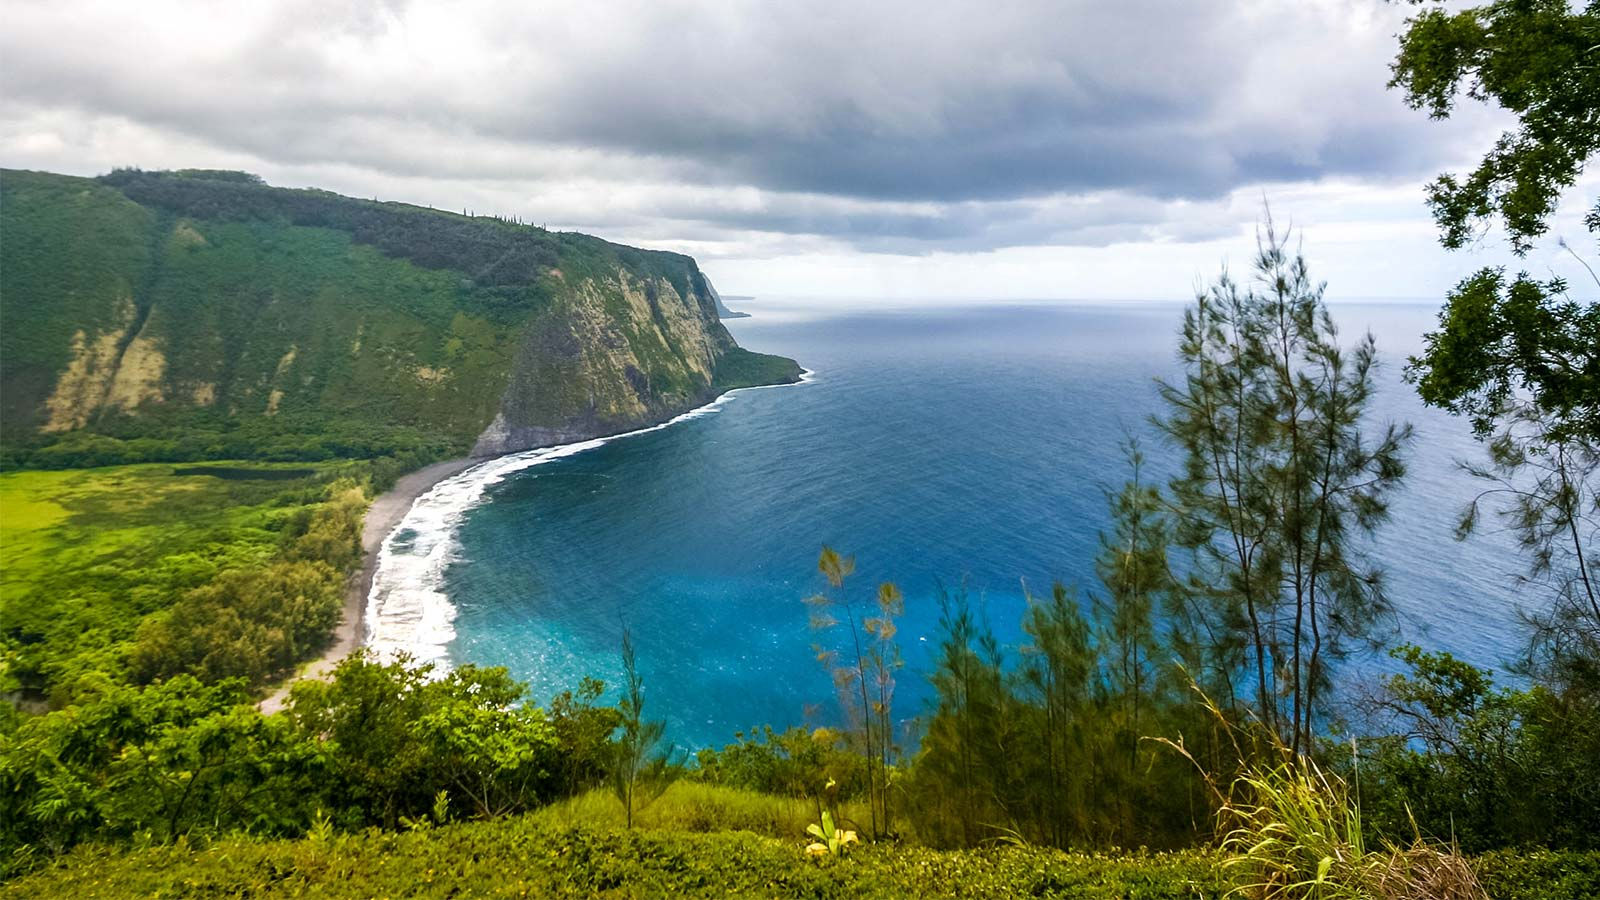 From waterfalls to volcanoes and everything in between. Experiencing this 7 day Big Island itinerary will give you a taste of what this island has to offer!